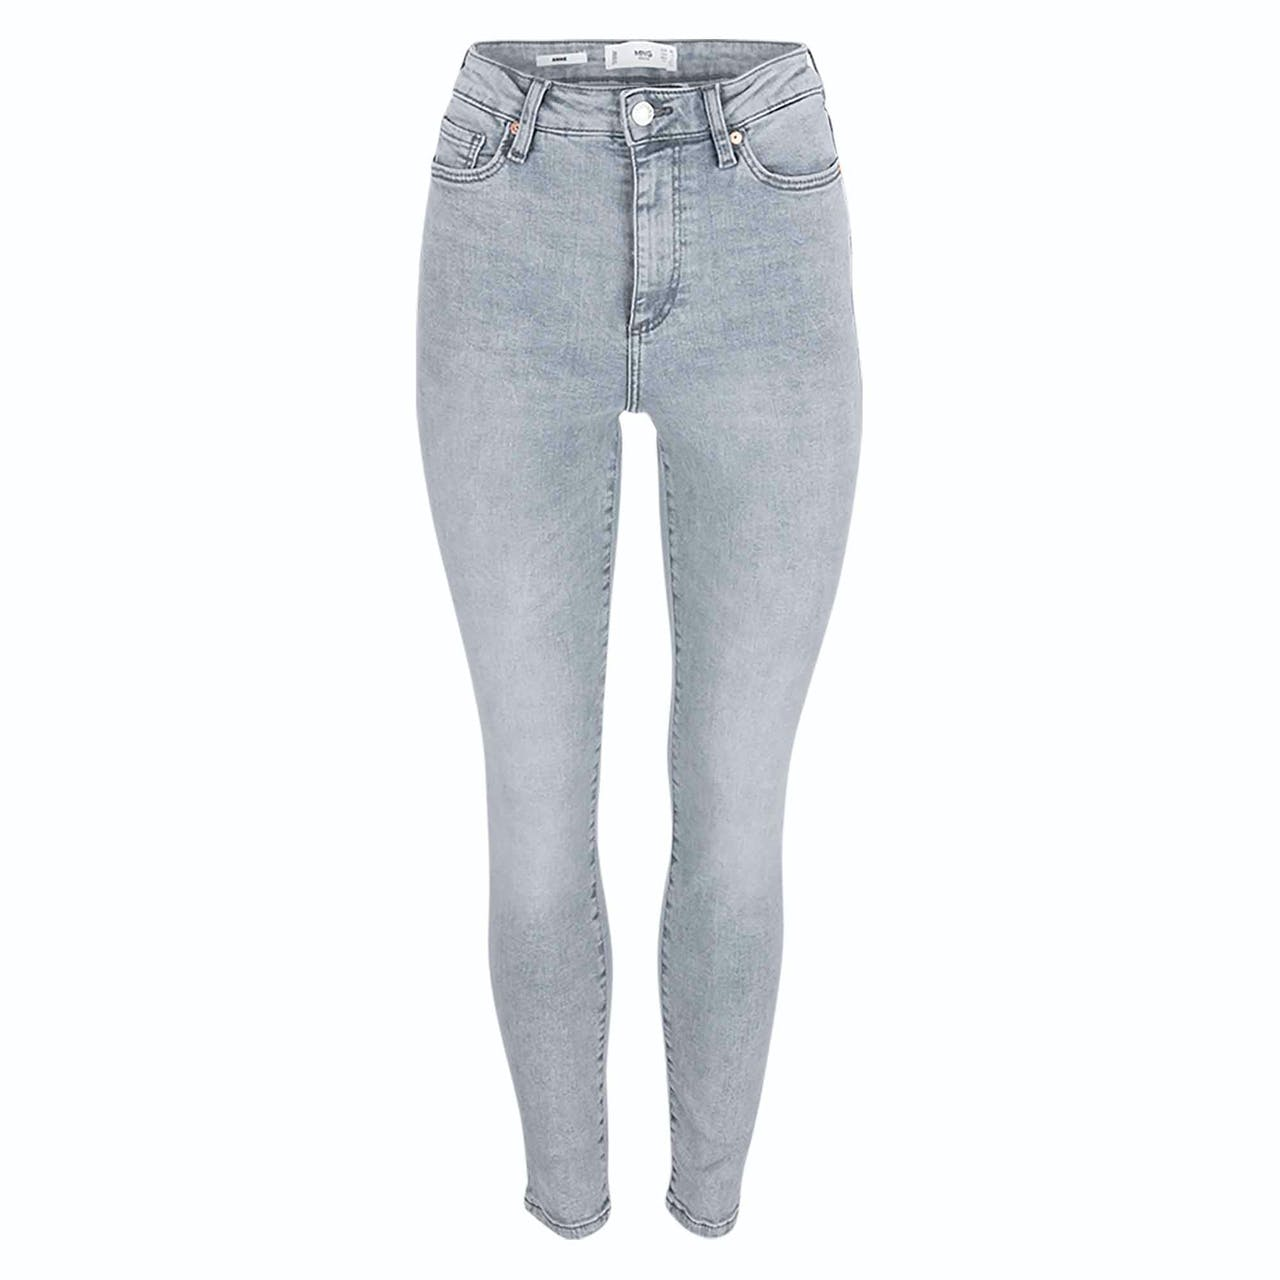 Jeans - Skinny Fit - Anne